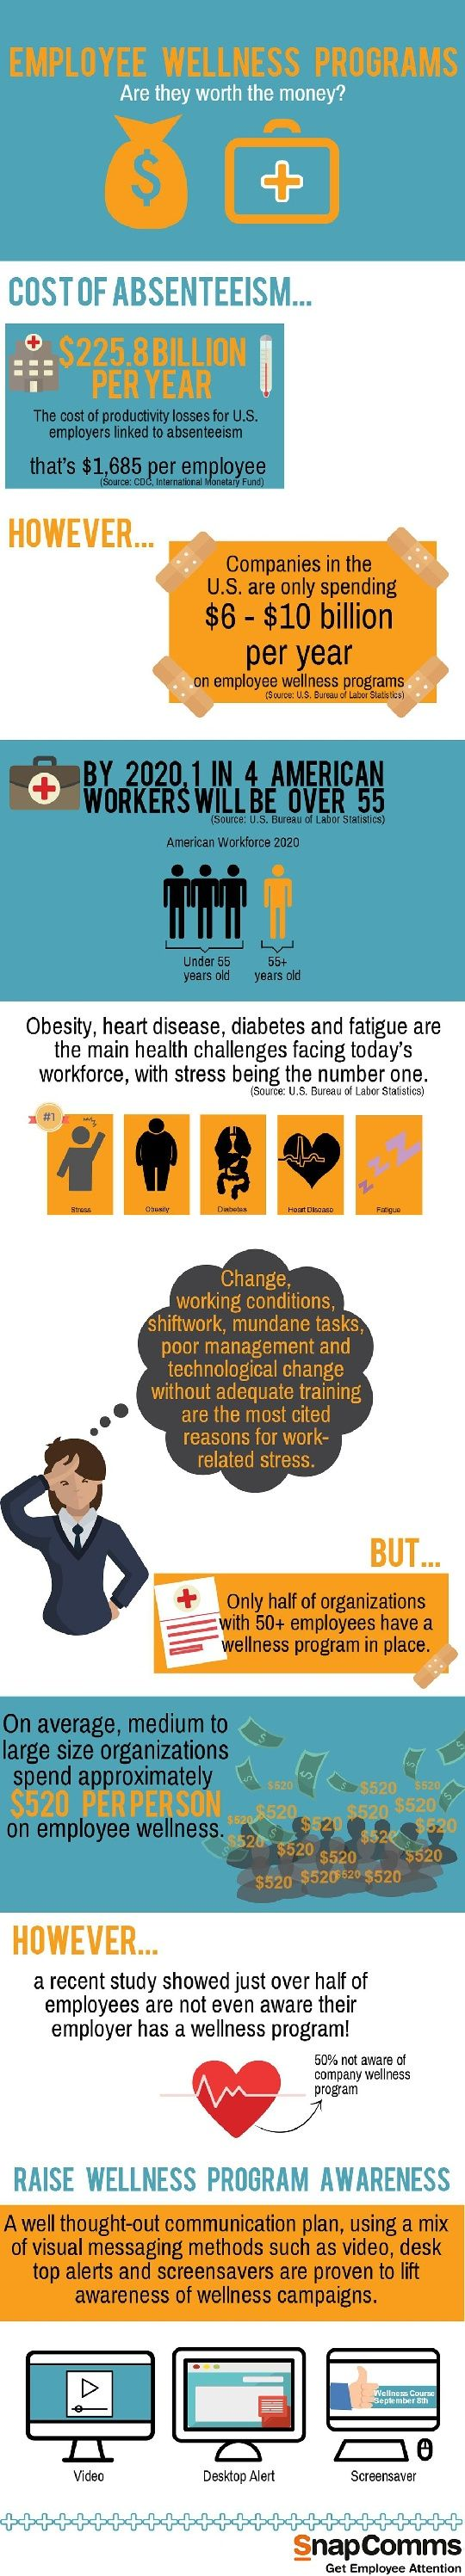 Employee Wellness Programs: Are they worth the money? [infographic] by SnapComms